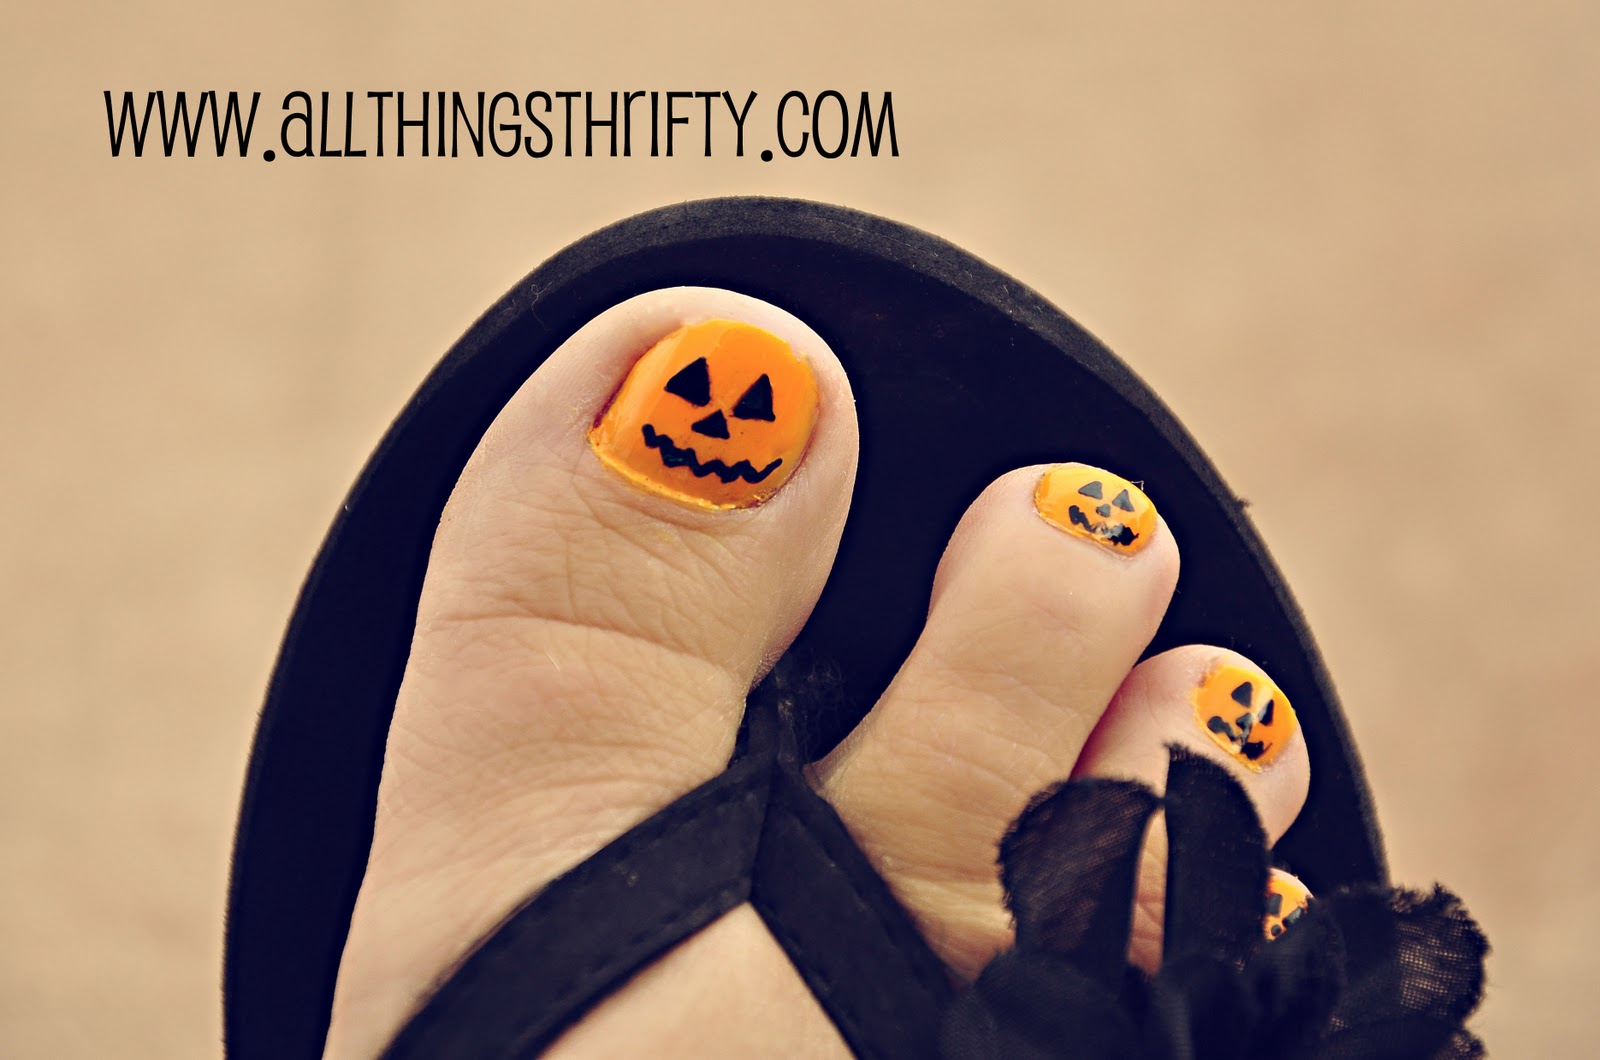 Jack-o-Lantern Pedicures for Short Little Girls' Toes